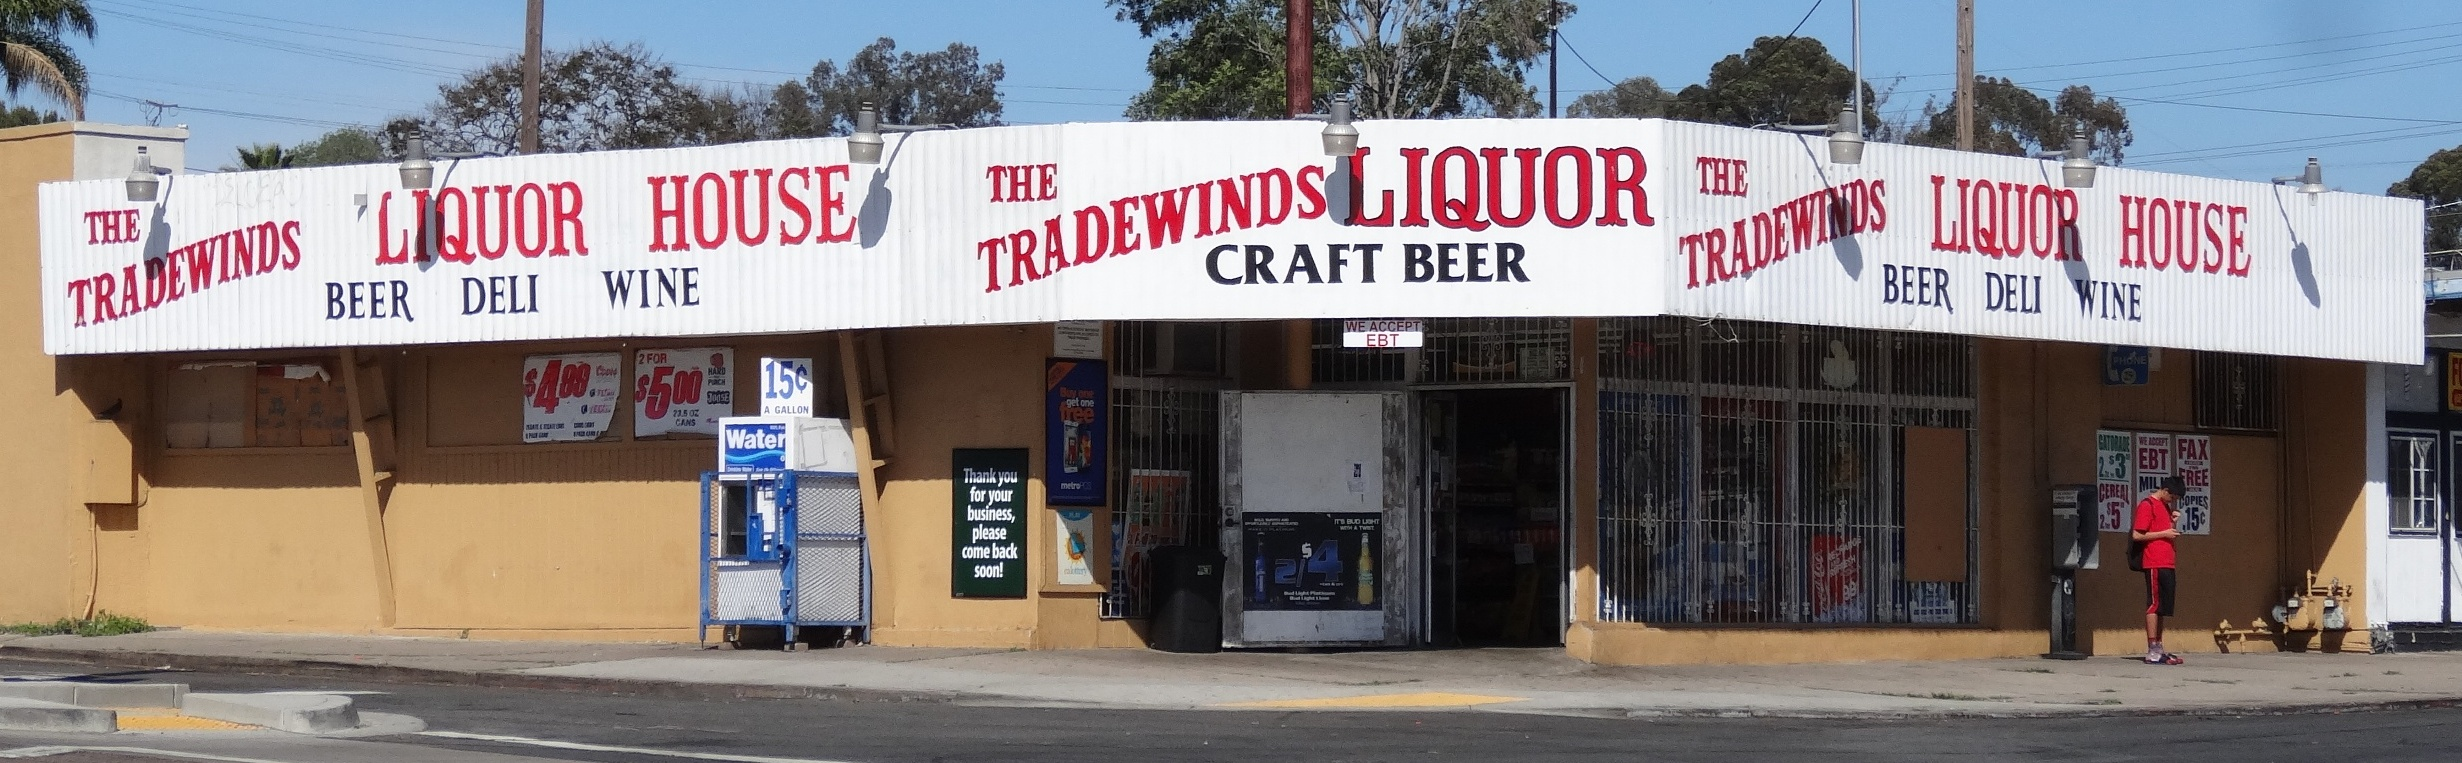 Tradewinds Liquor 3-24-2015 (100)